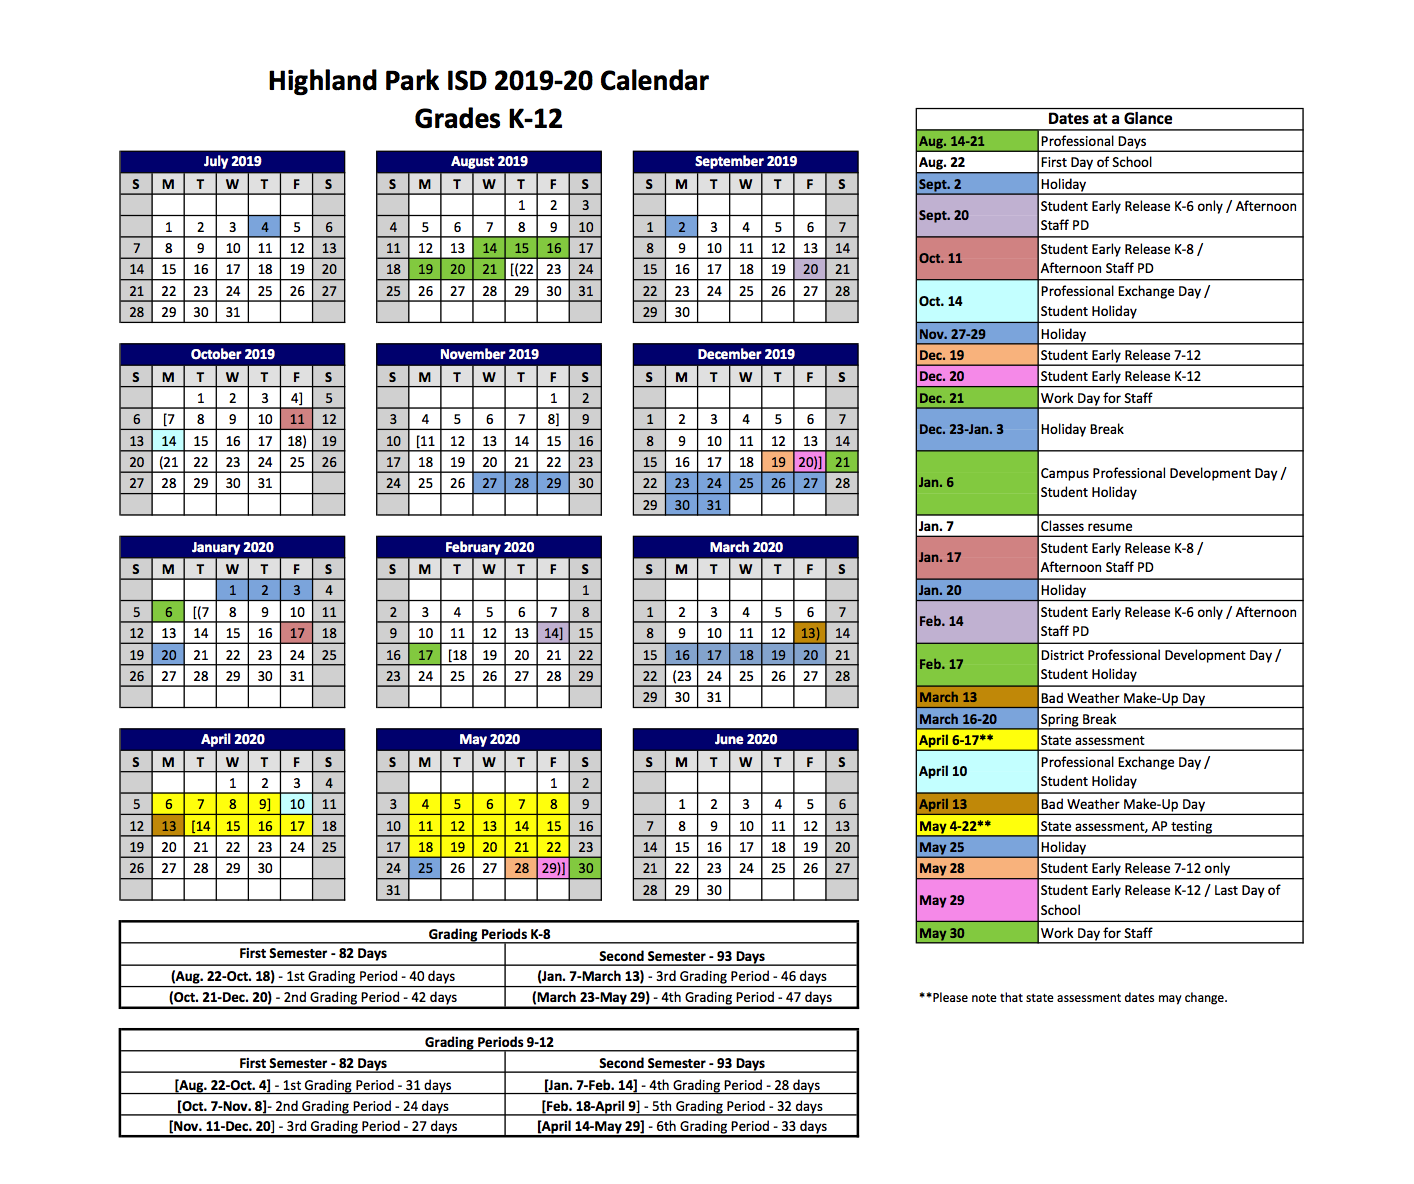 West Chester University Spring Break 2020.2019 2020 Hpisd Calendar Calendars Highland Park